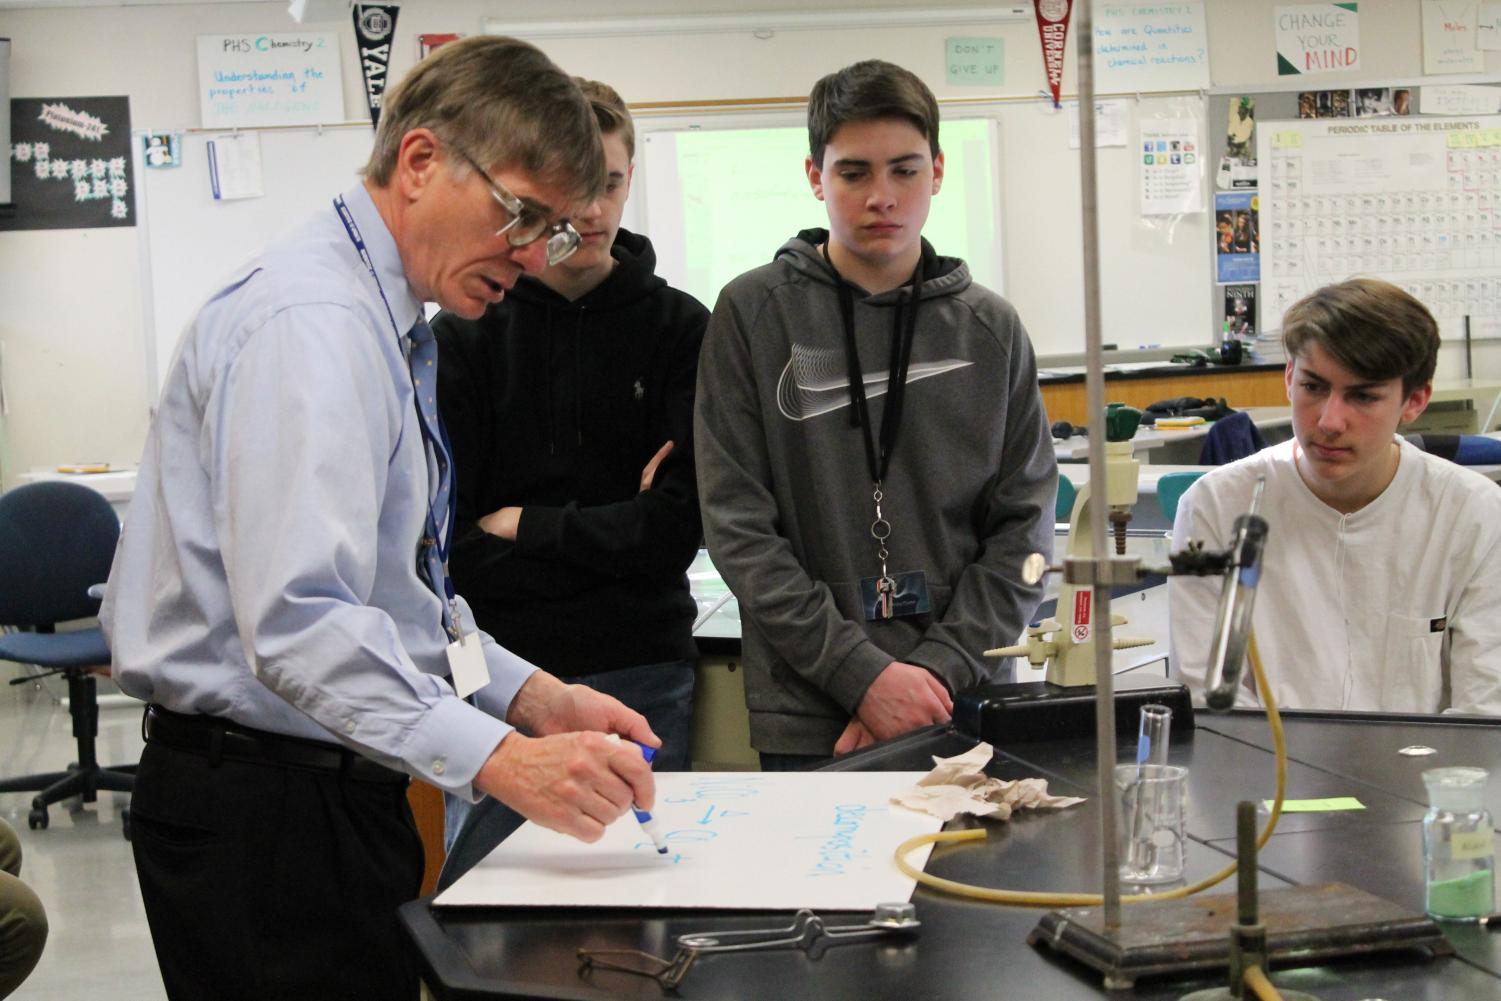 Mr. Ken Smith works with students on a science project during class.